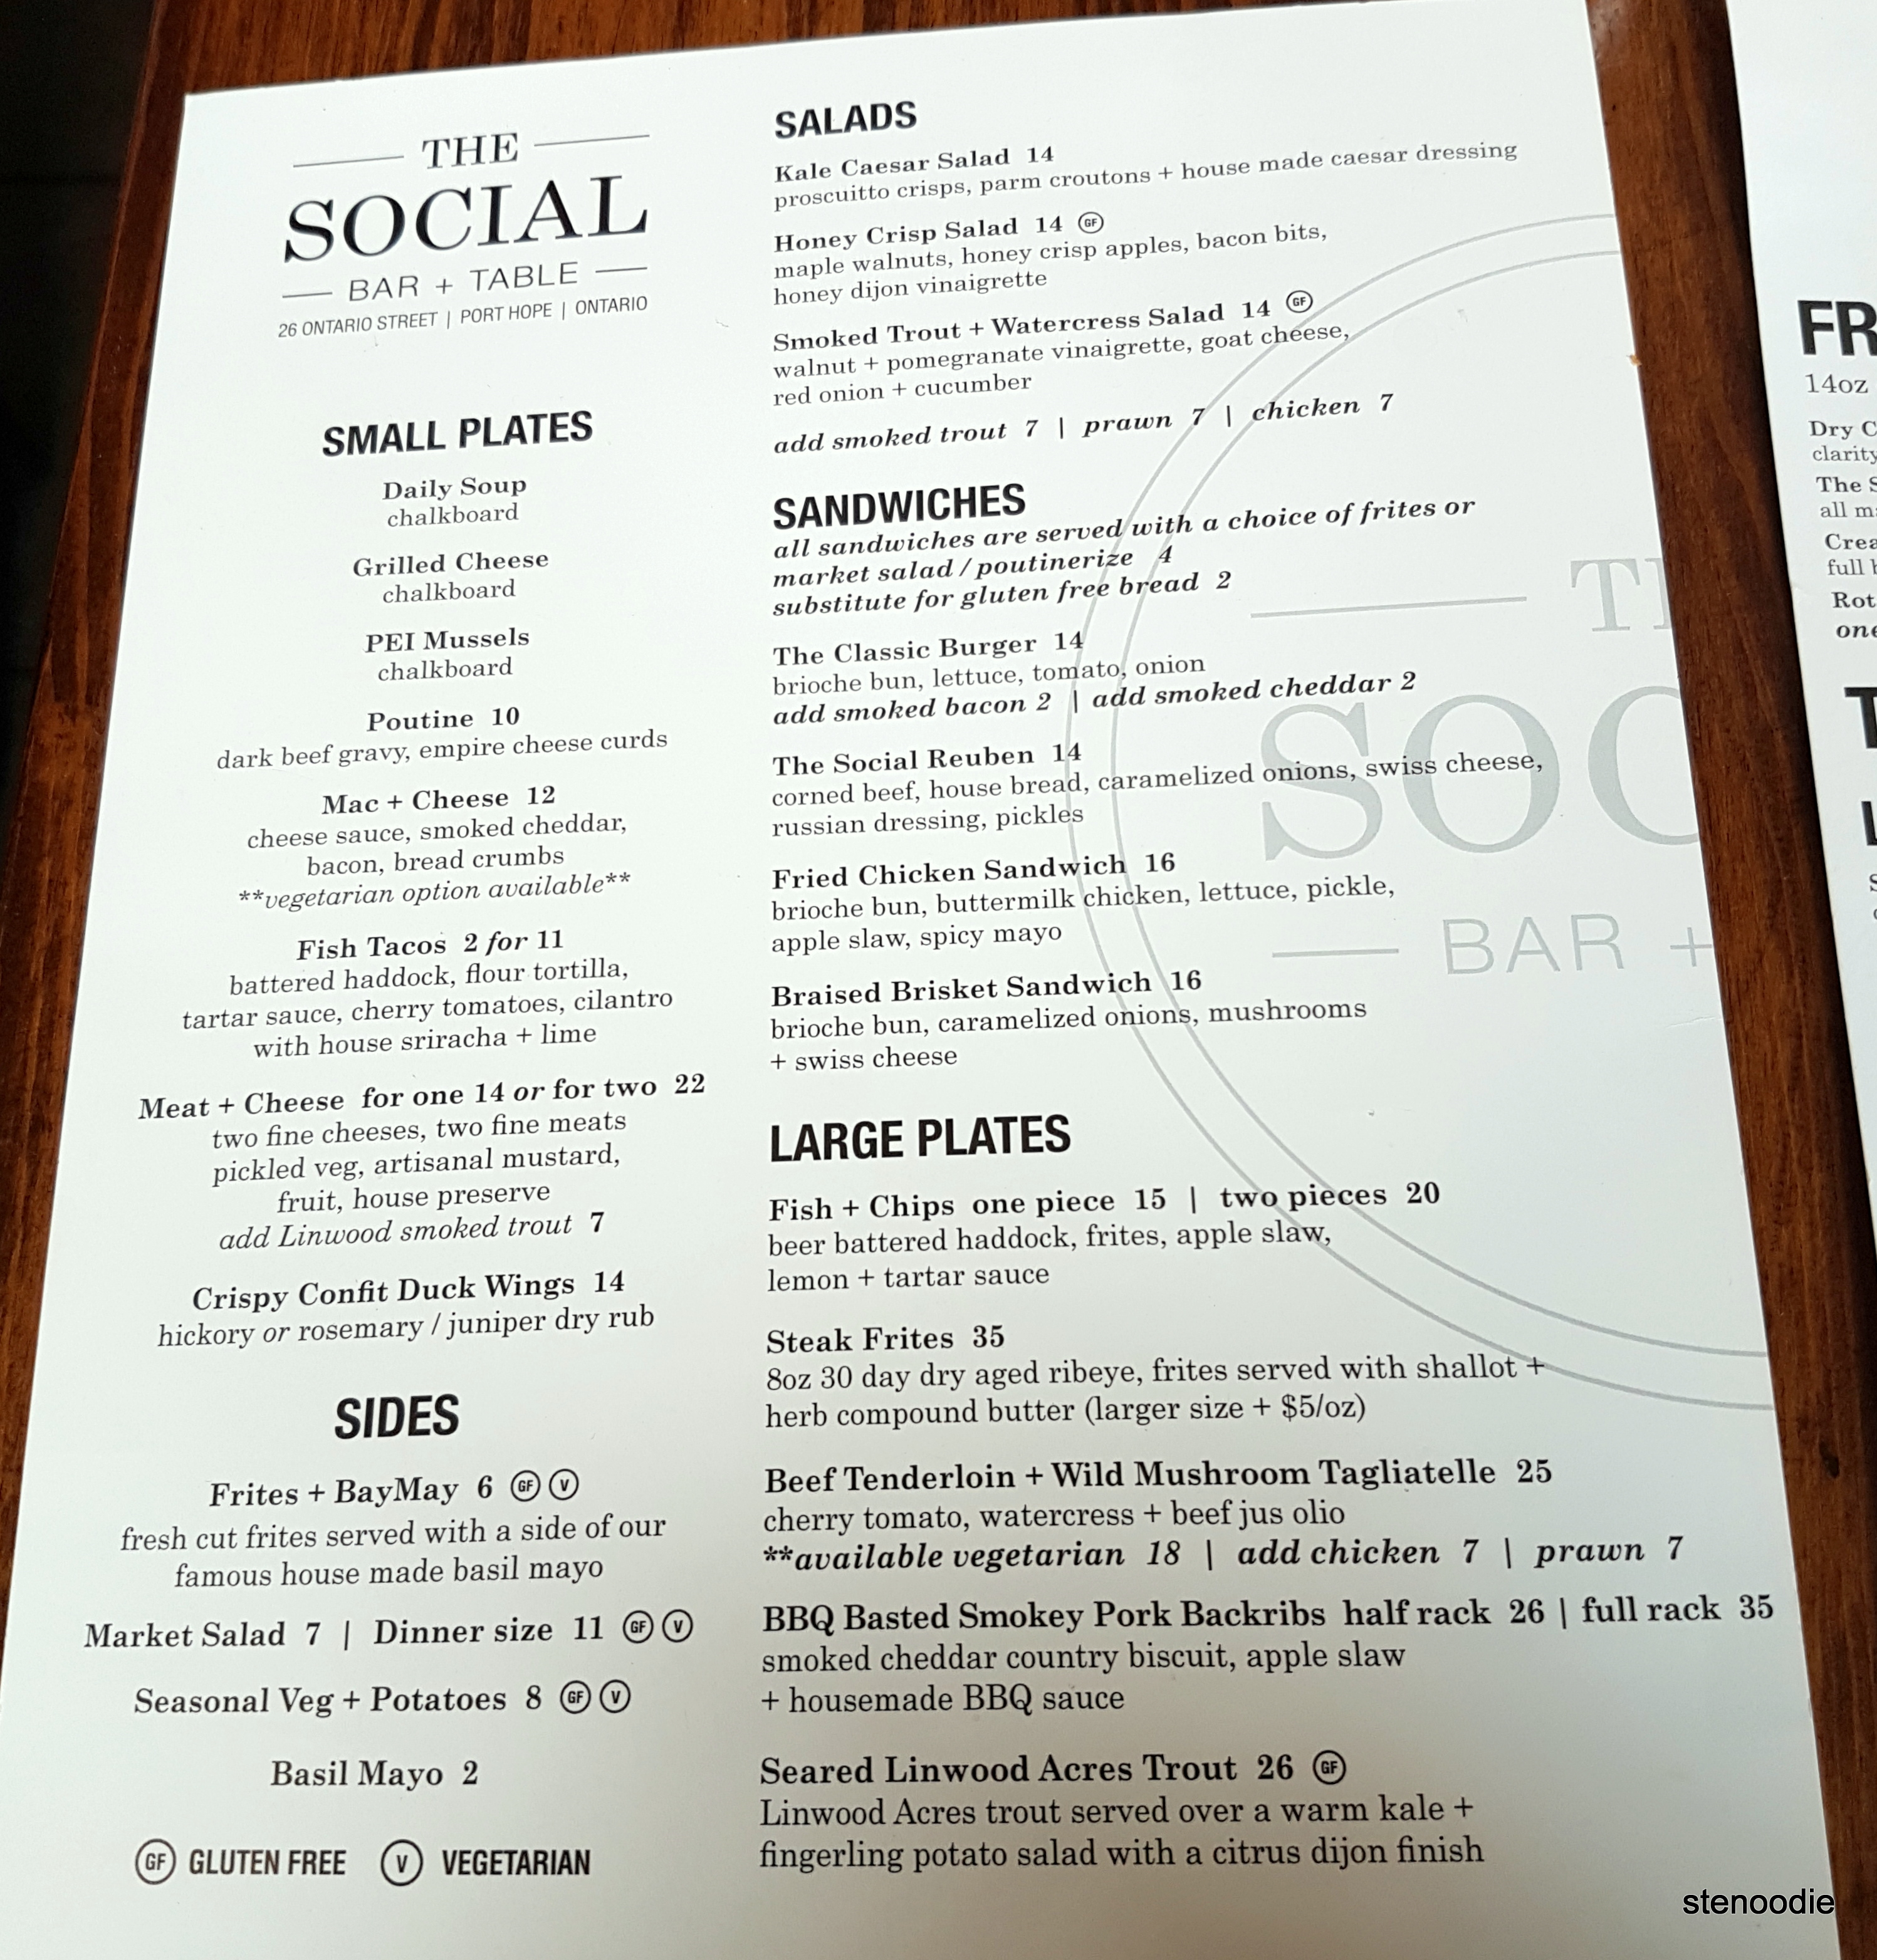 The Social Bar and Table dinner menu and prices